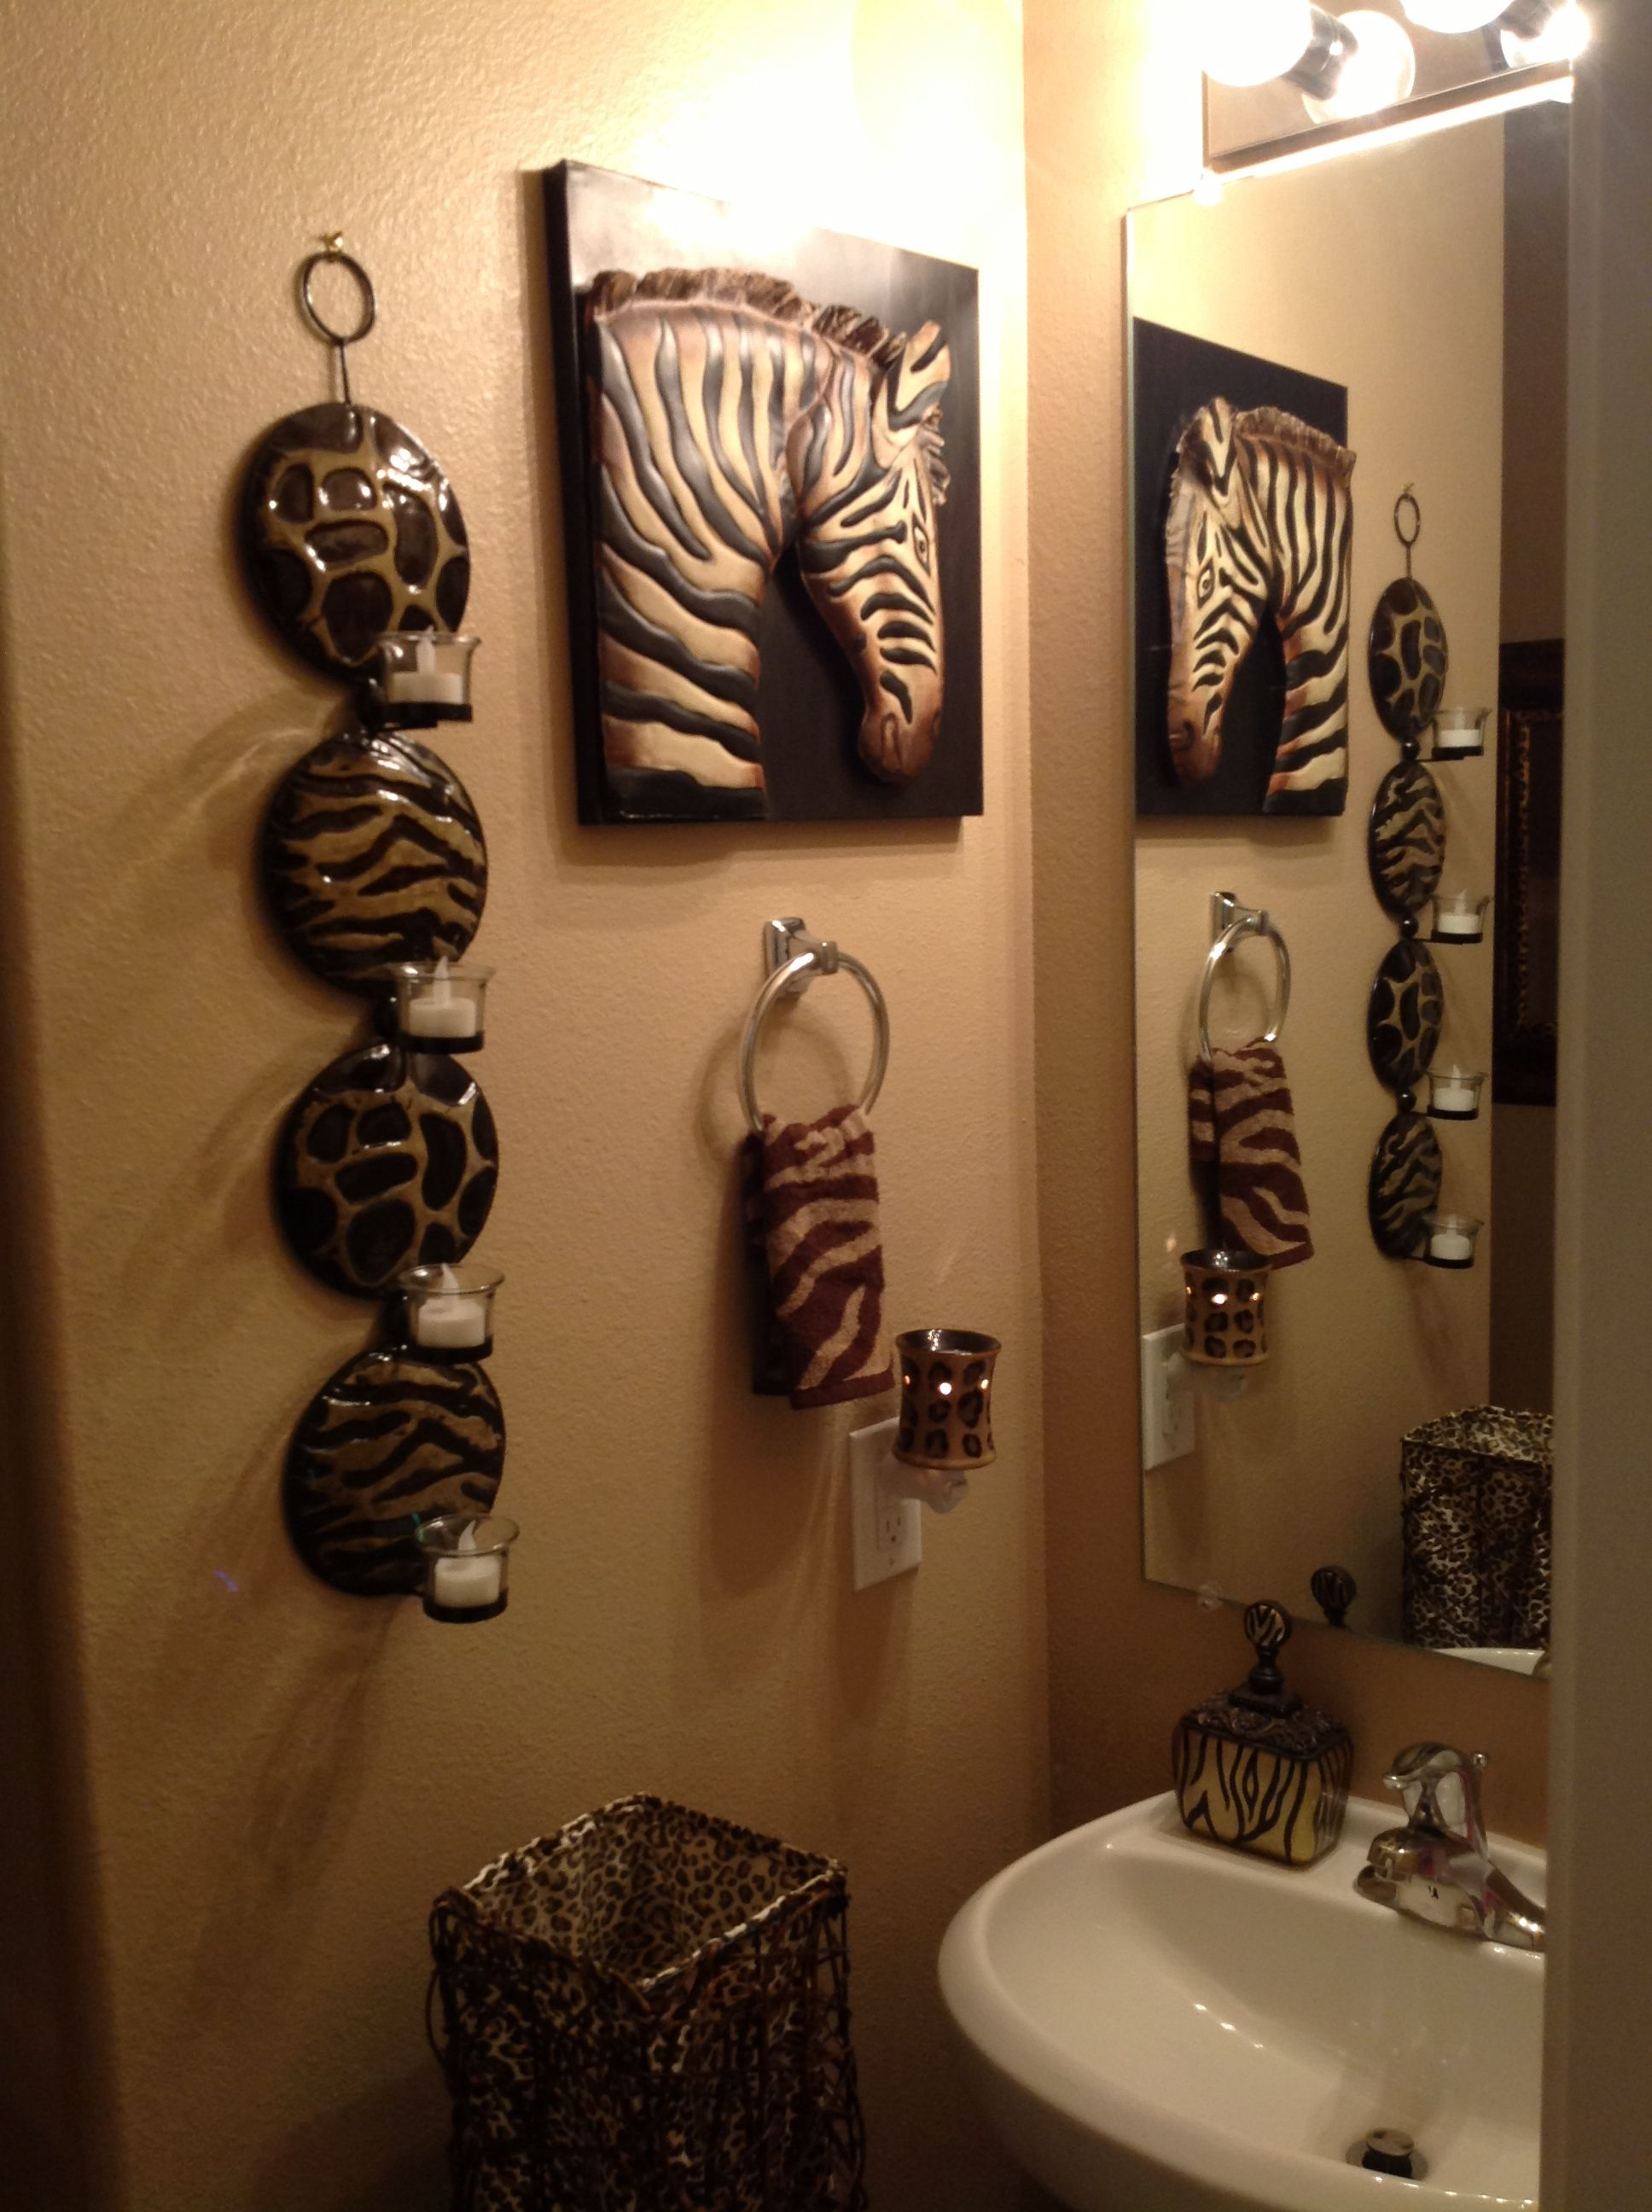 Safari bathroom safari bathroom pinterest safari for African bathroom decor